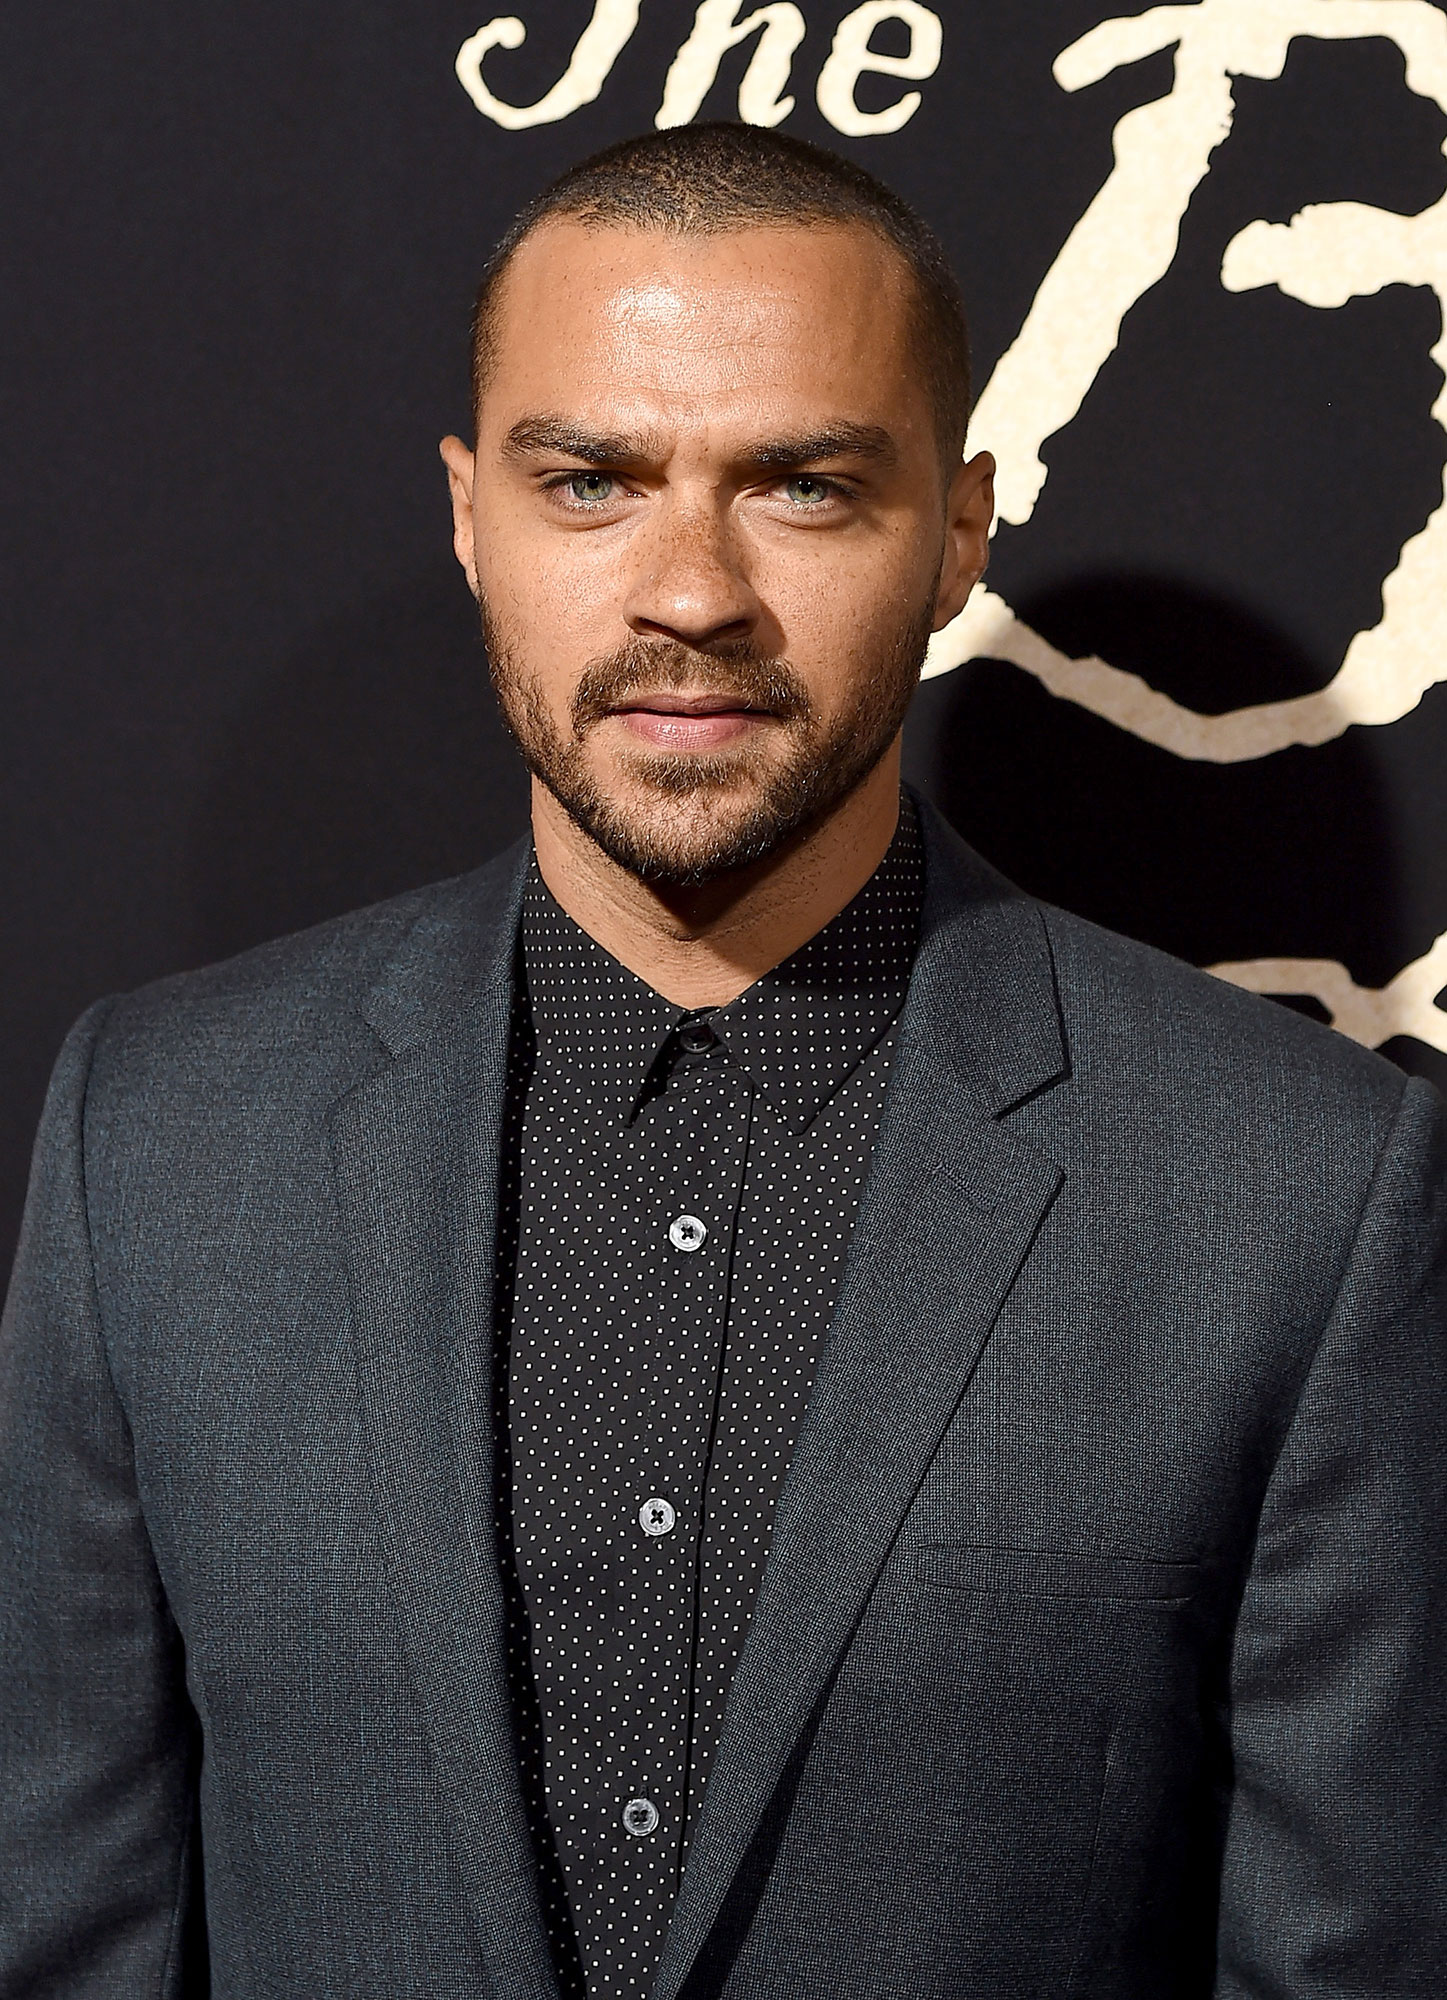 Jesse Williams Teachers Before Fame - The Grey's Anatomy actor followed in his parents' footsteps and became a high school teacher in Philadelphia after he graduated from Temple University. Williams taught American Studies, African Studies and English for six years until he left to pursue his acting career.